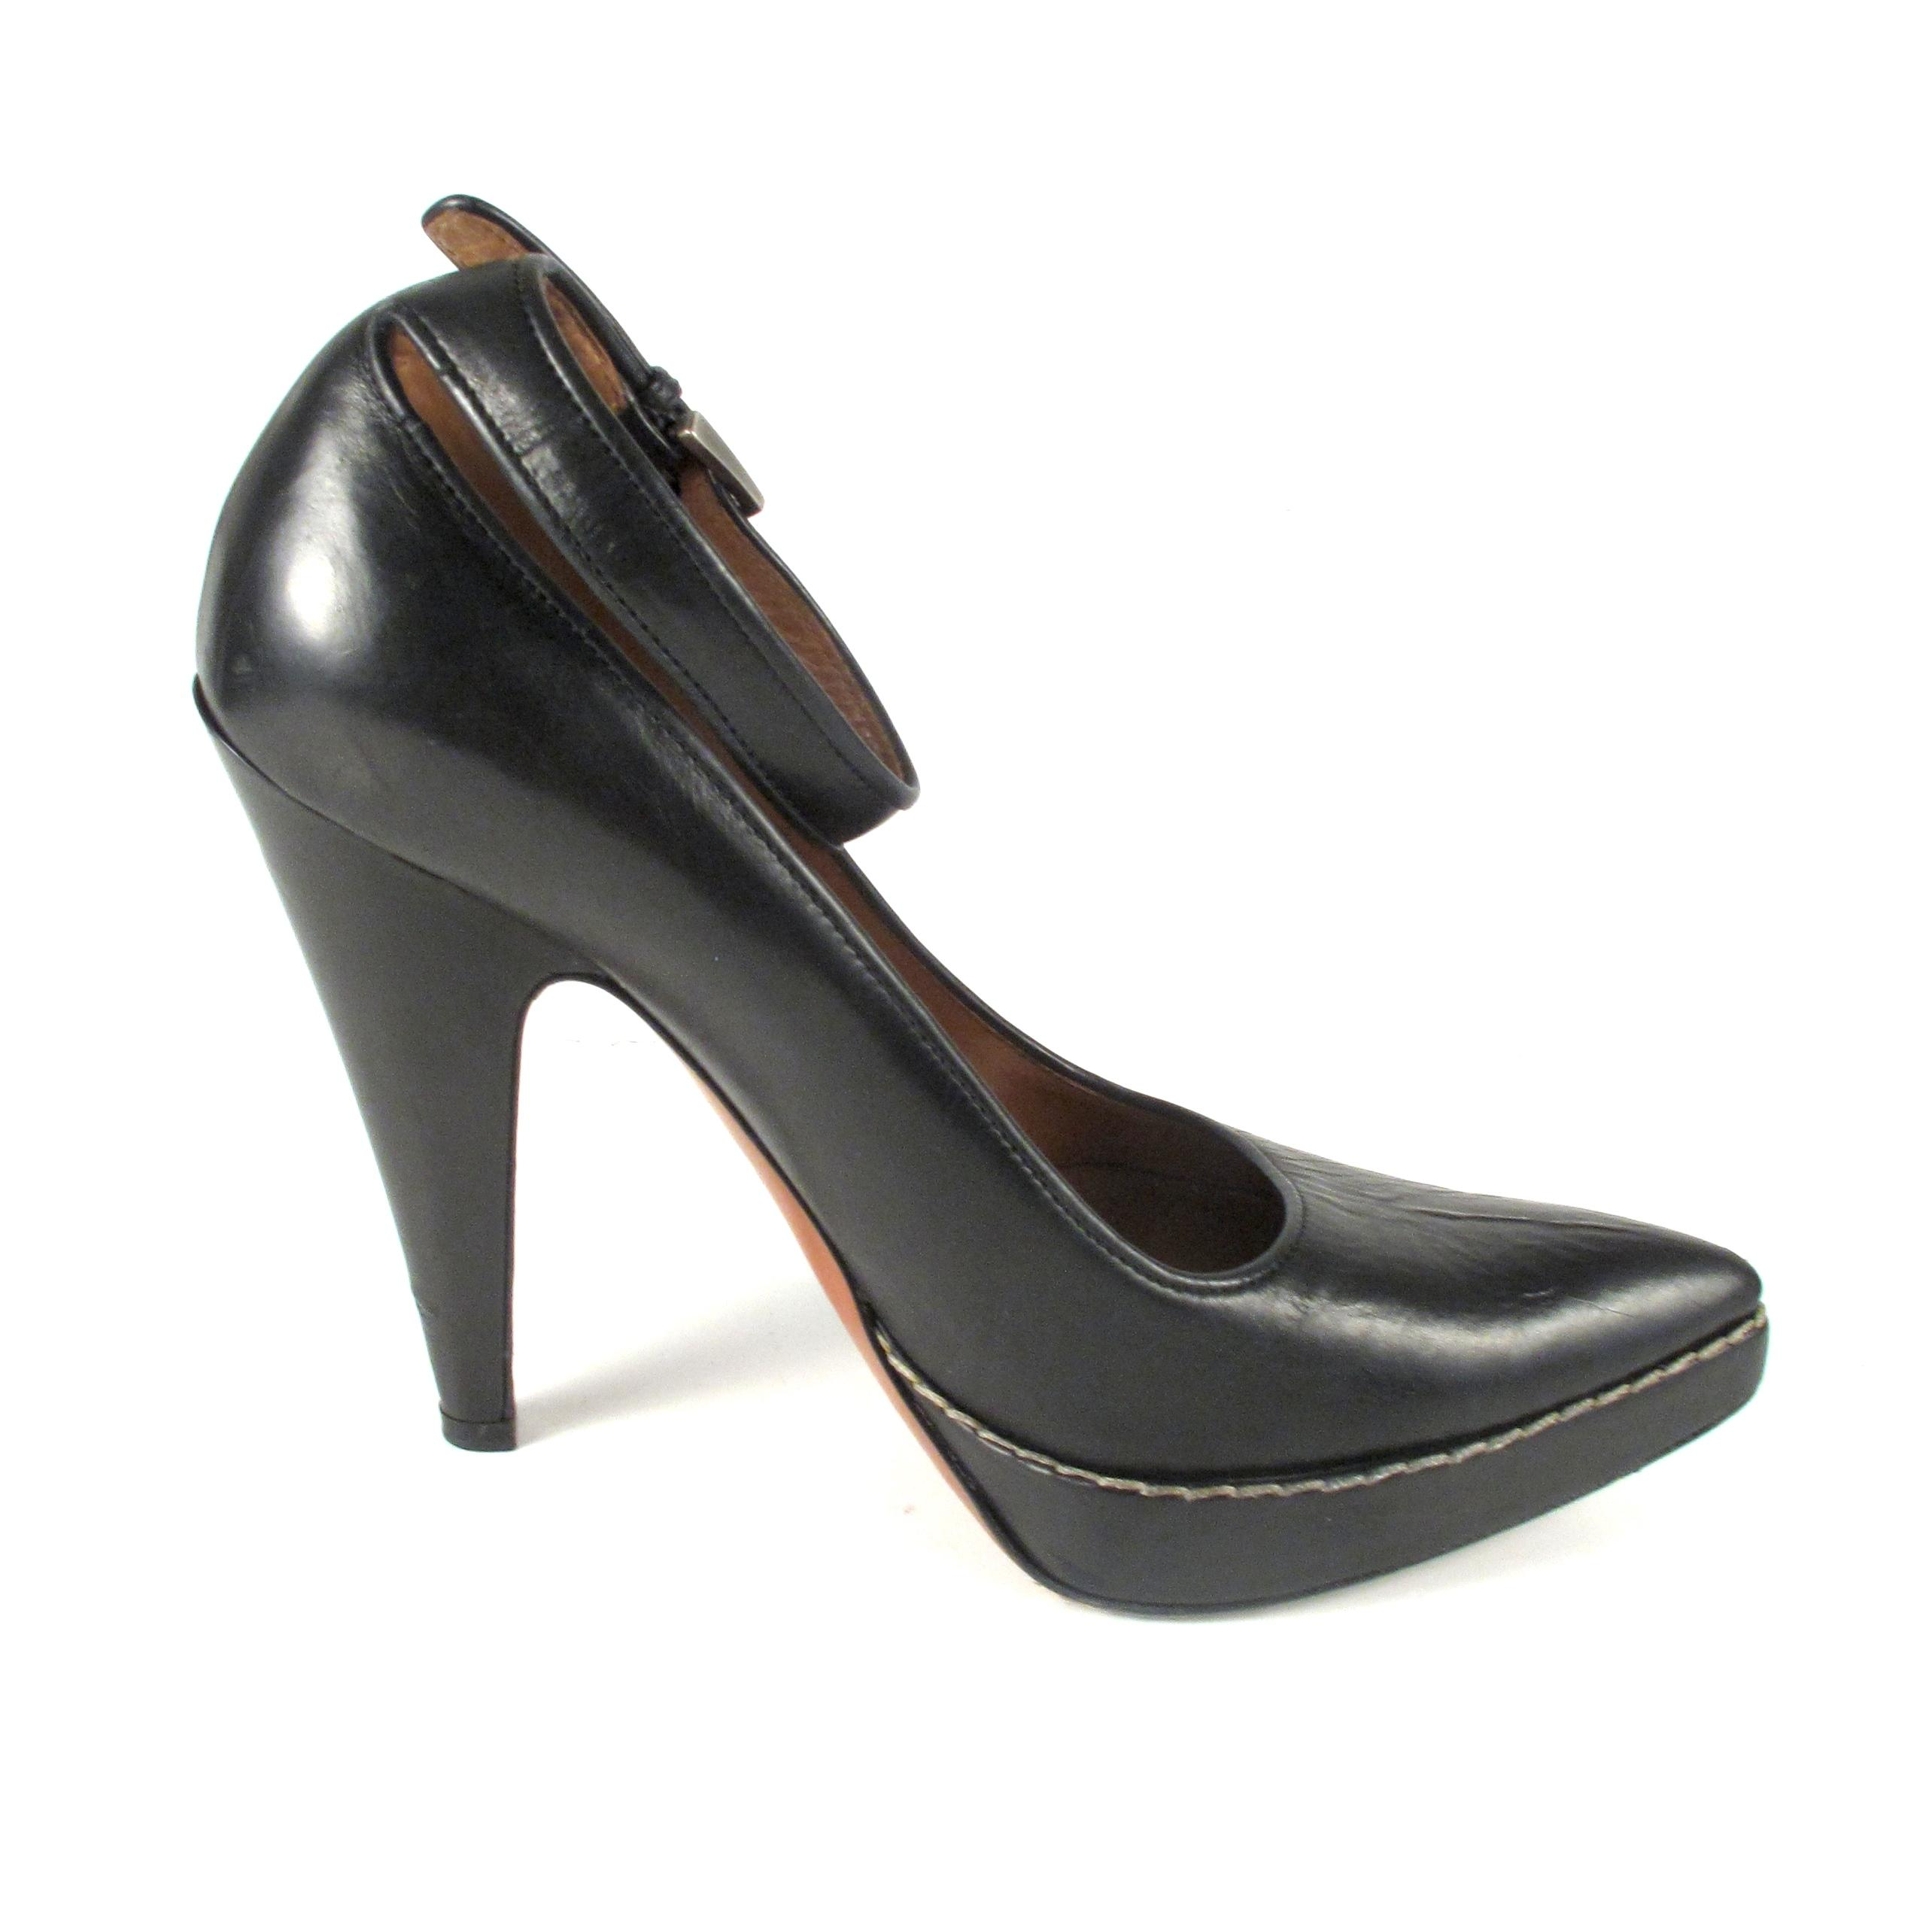 classic online cheap sale 2015 Alaïa Leather Point-Toe Pumps cheap sale for cheap geniue stockist for sale clearance supply I7On4WAG